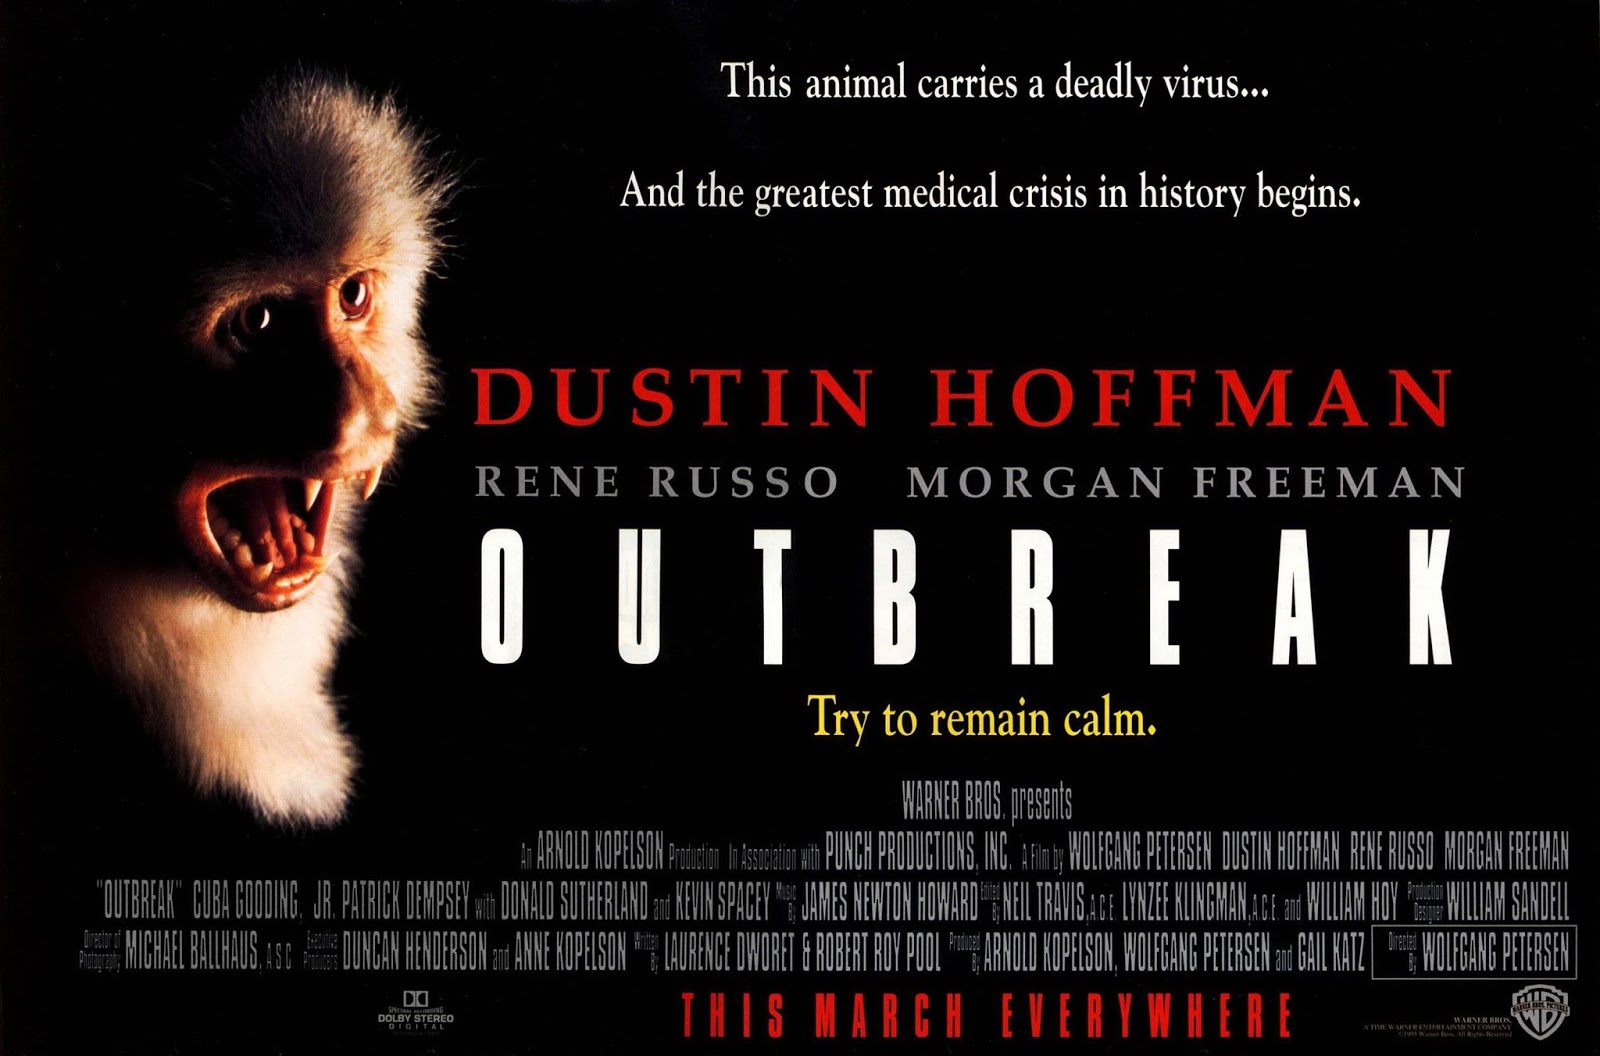 1995 Movie Posters: Happyotter: OUTBREAK (1995